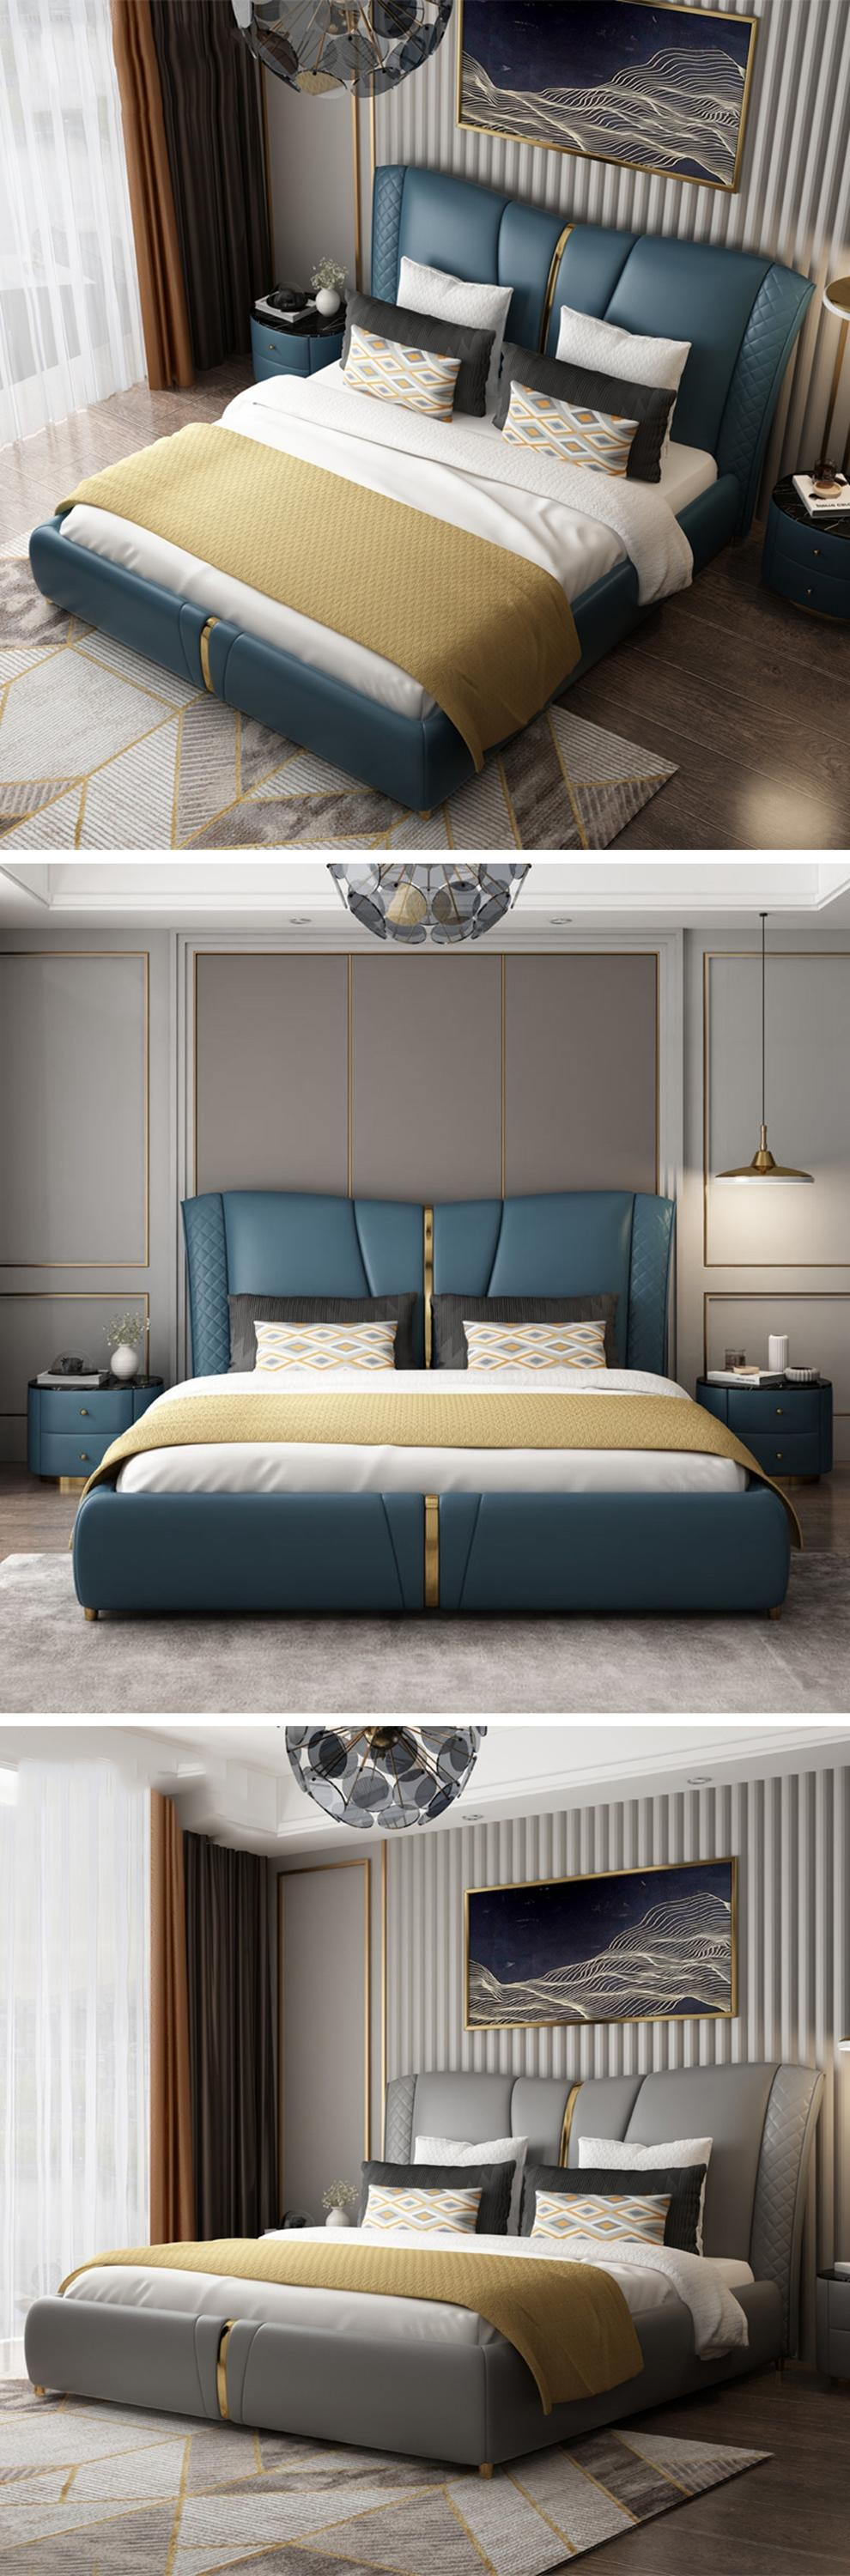 king size beds bedroom furniture double with storage luxury bed modern